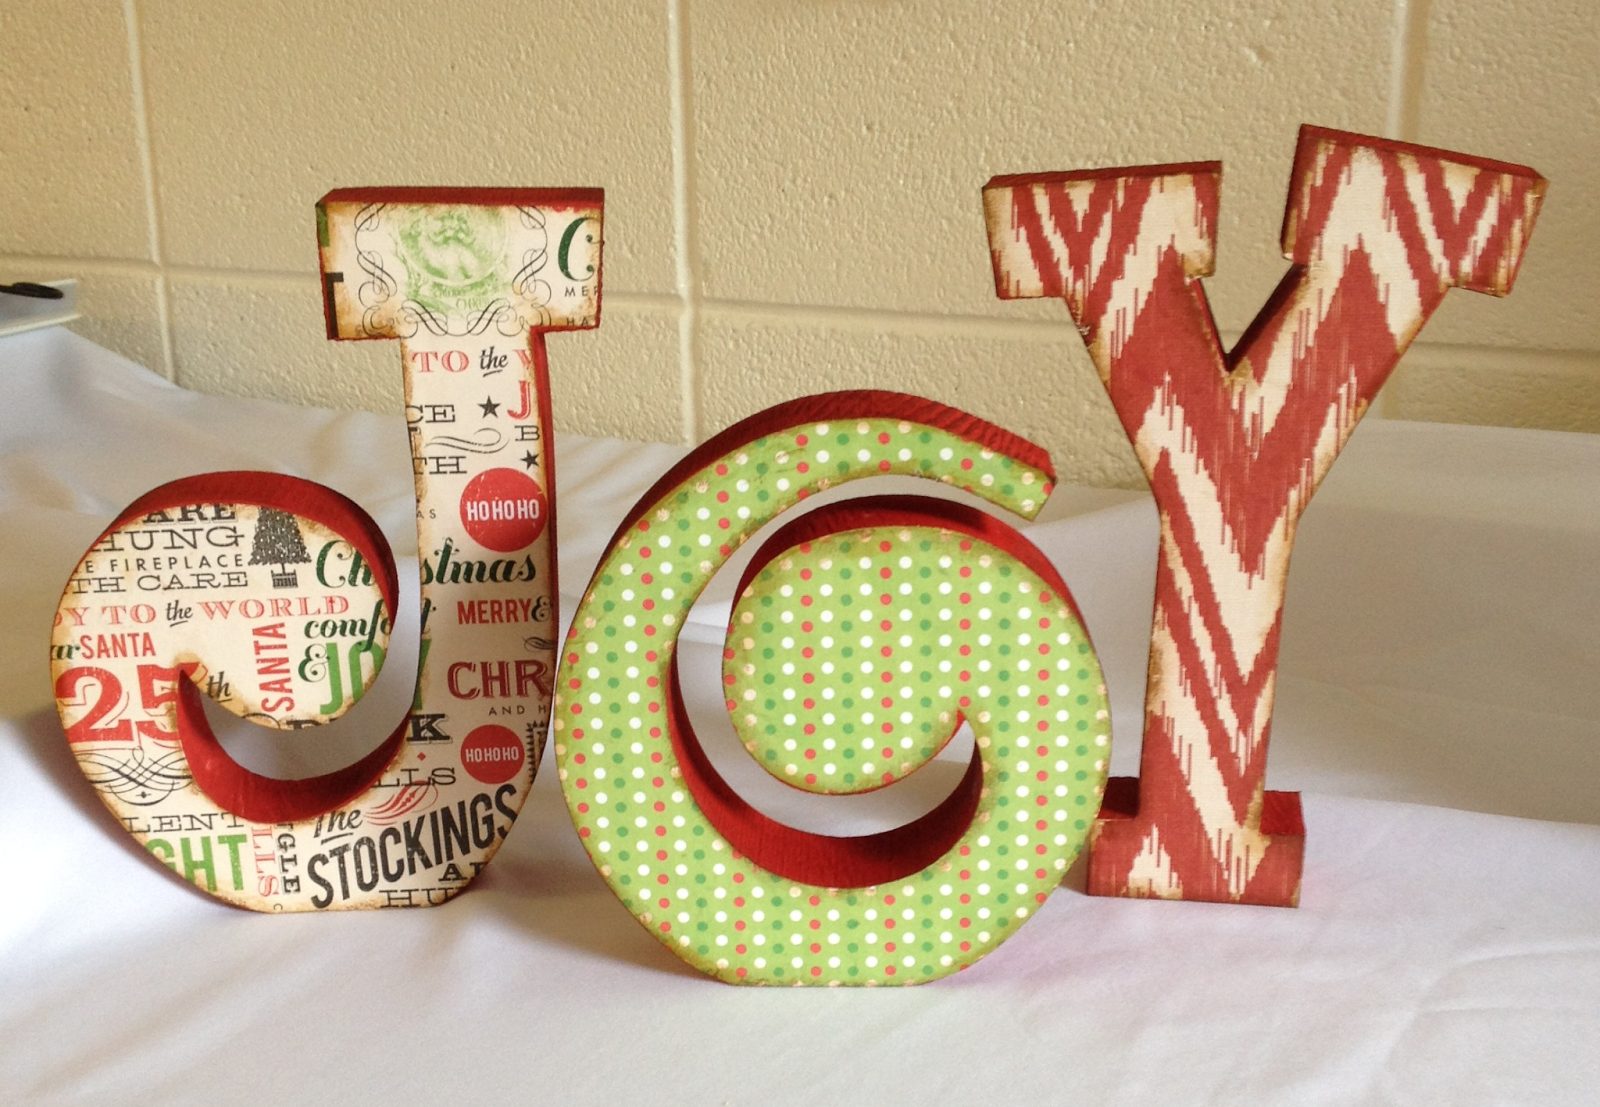 How to glue scrapbook paper to wood letters - Kit Includes Wood Letters Coordinating Scrapbook Paper Paint And Glue Supplies Needed Scissors